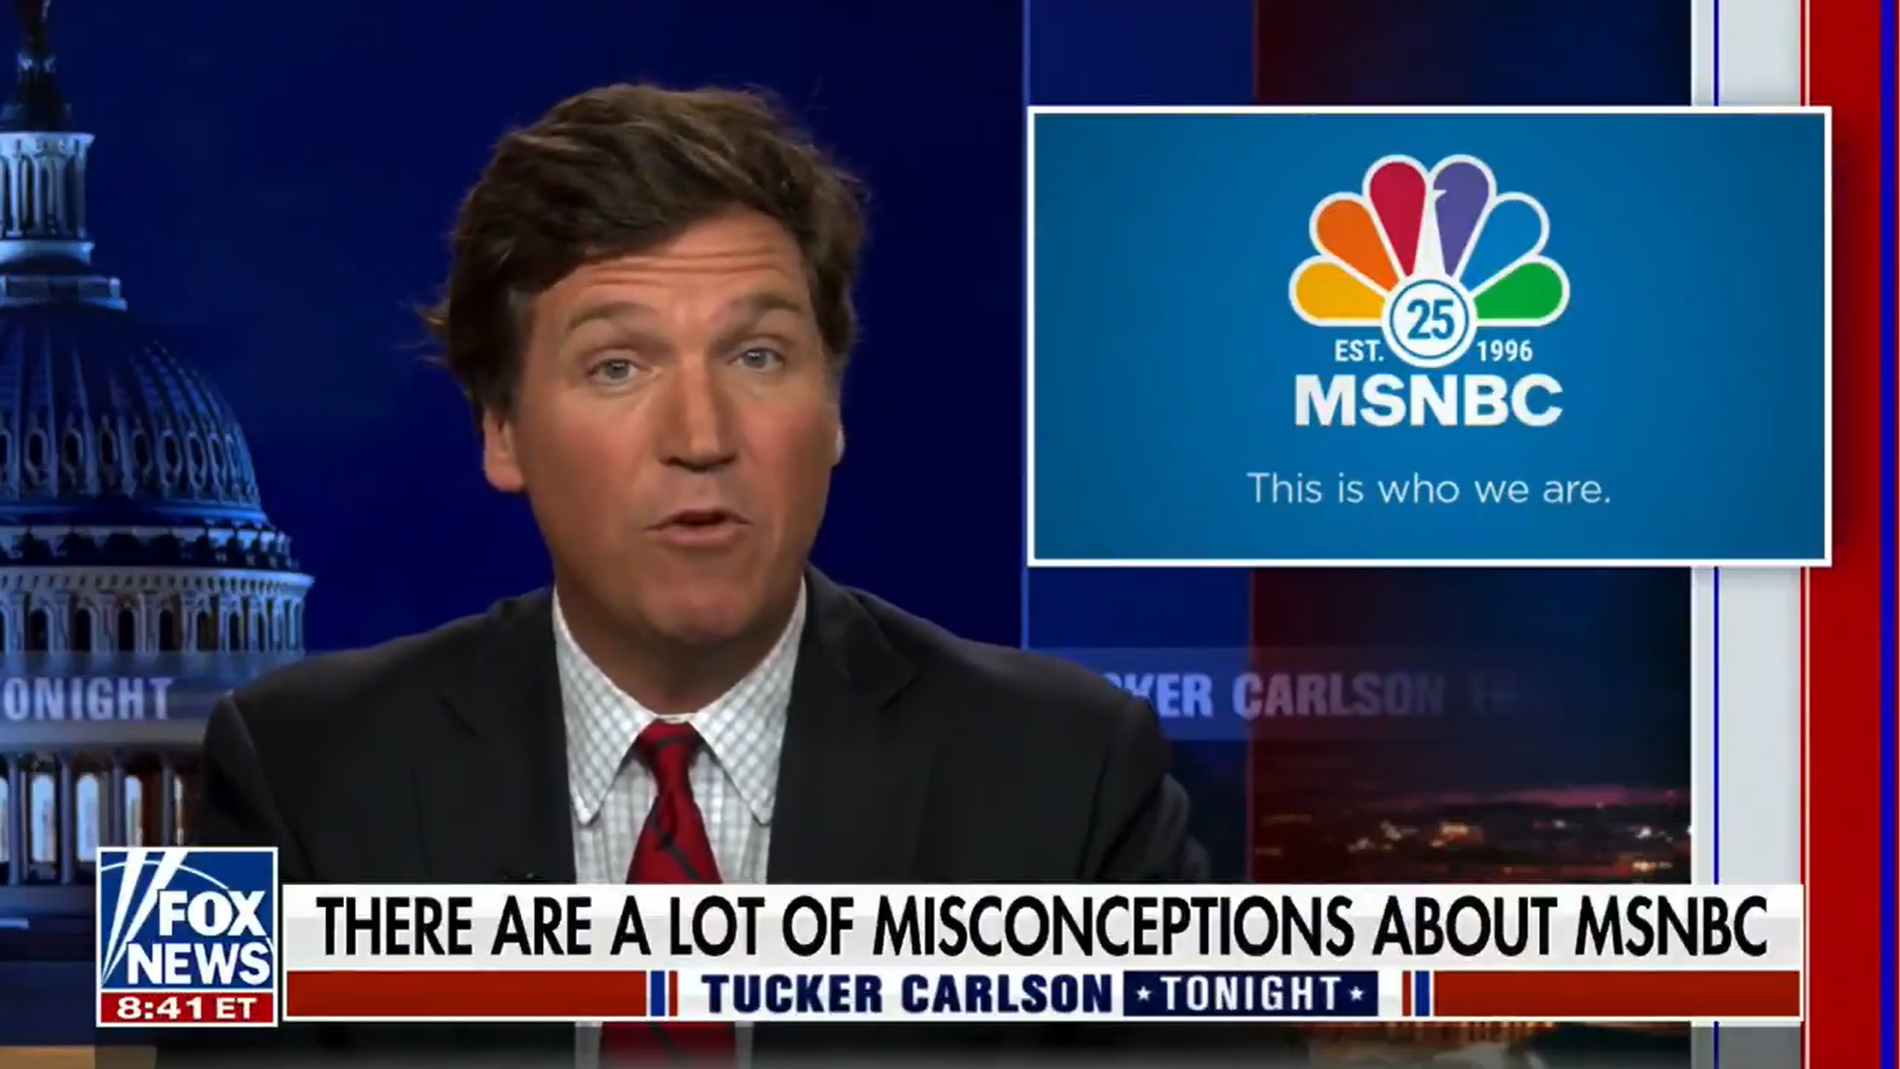 WATCH: Tucker Carlson wishes MSNBC a happy birthday, 'may all the kindness you spread keep coming back to you'